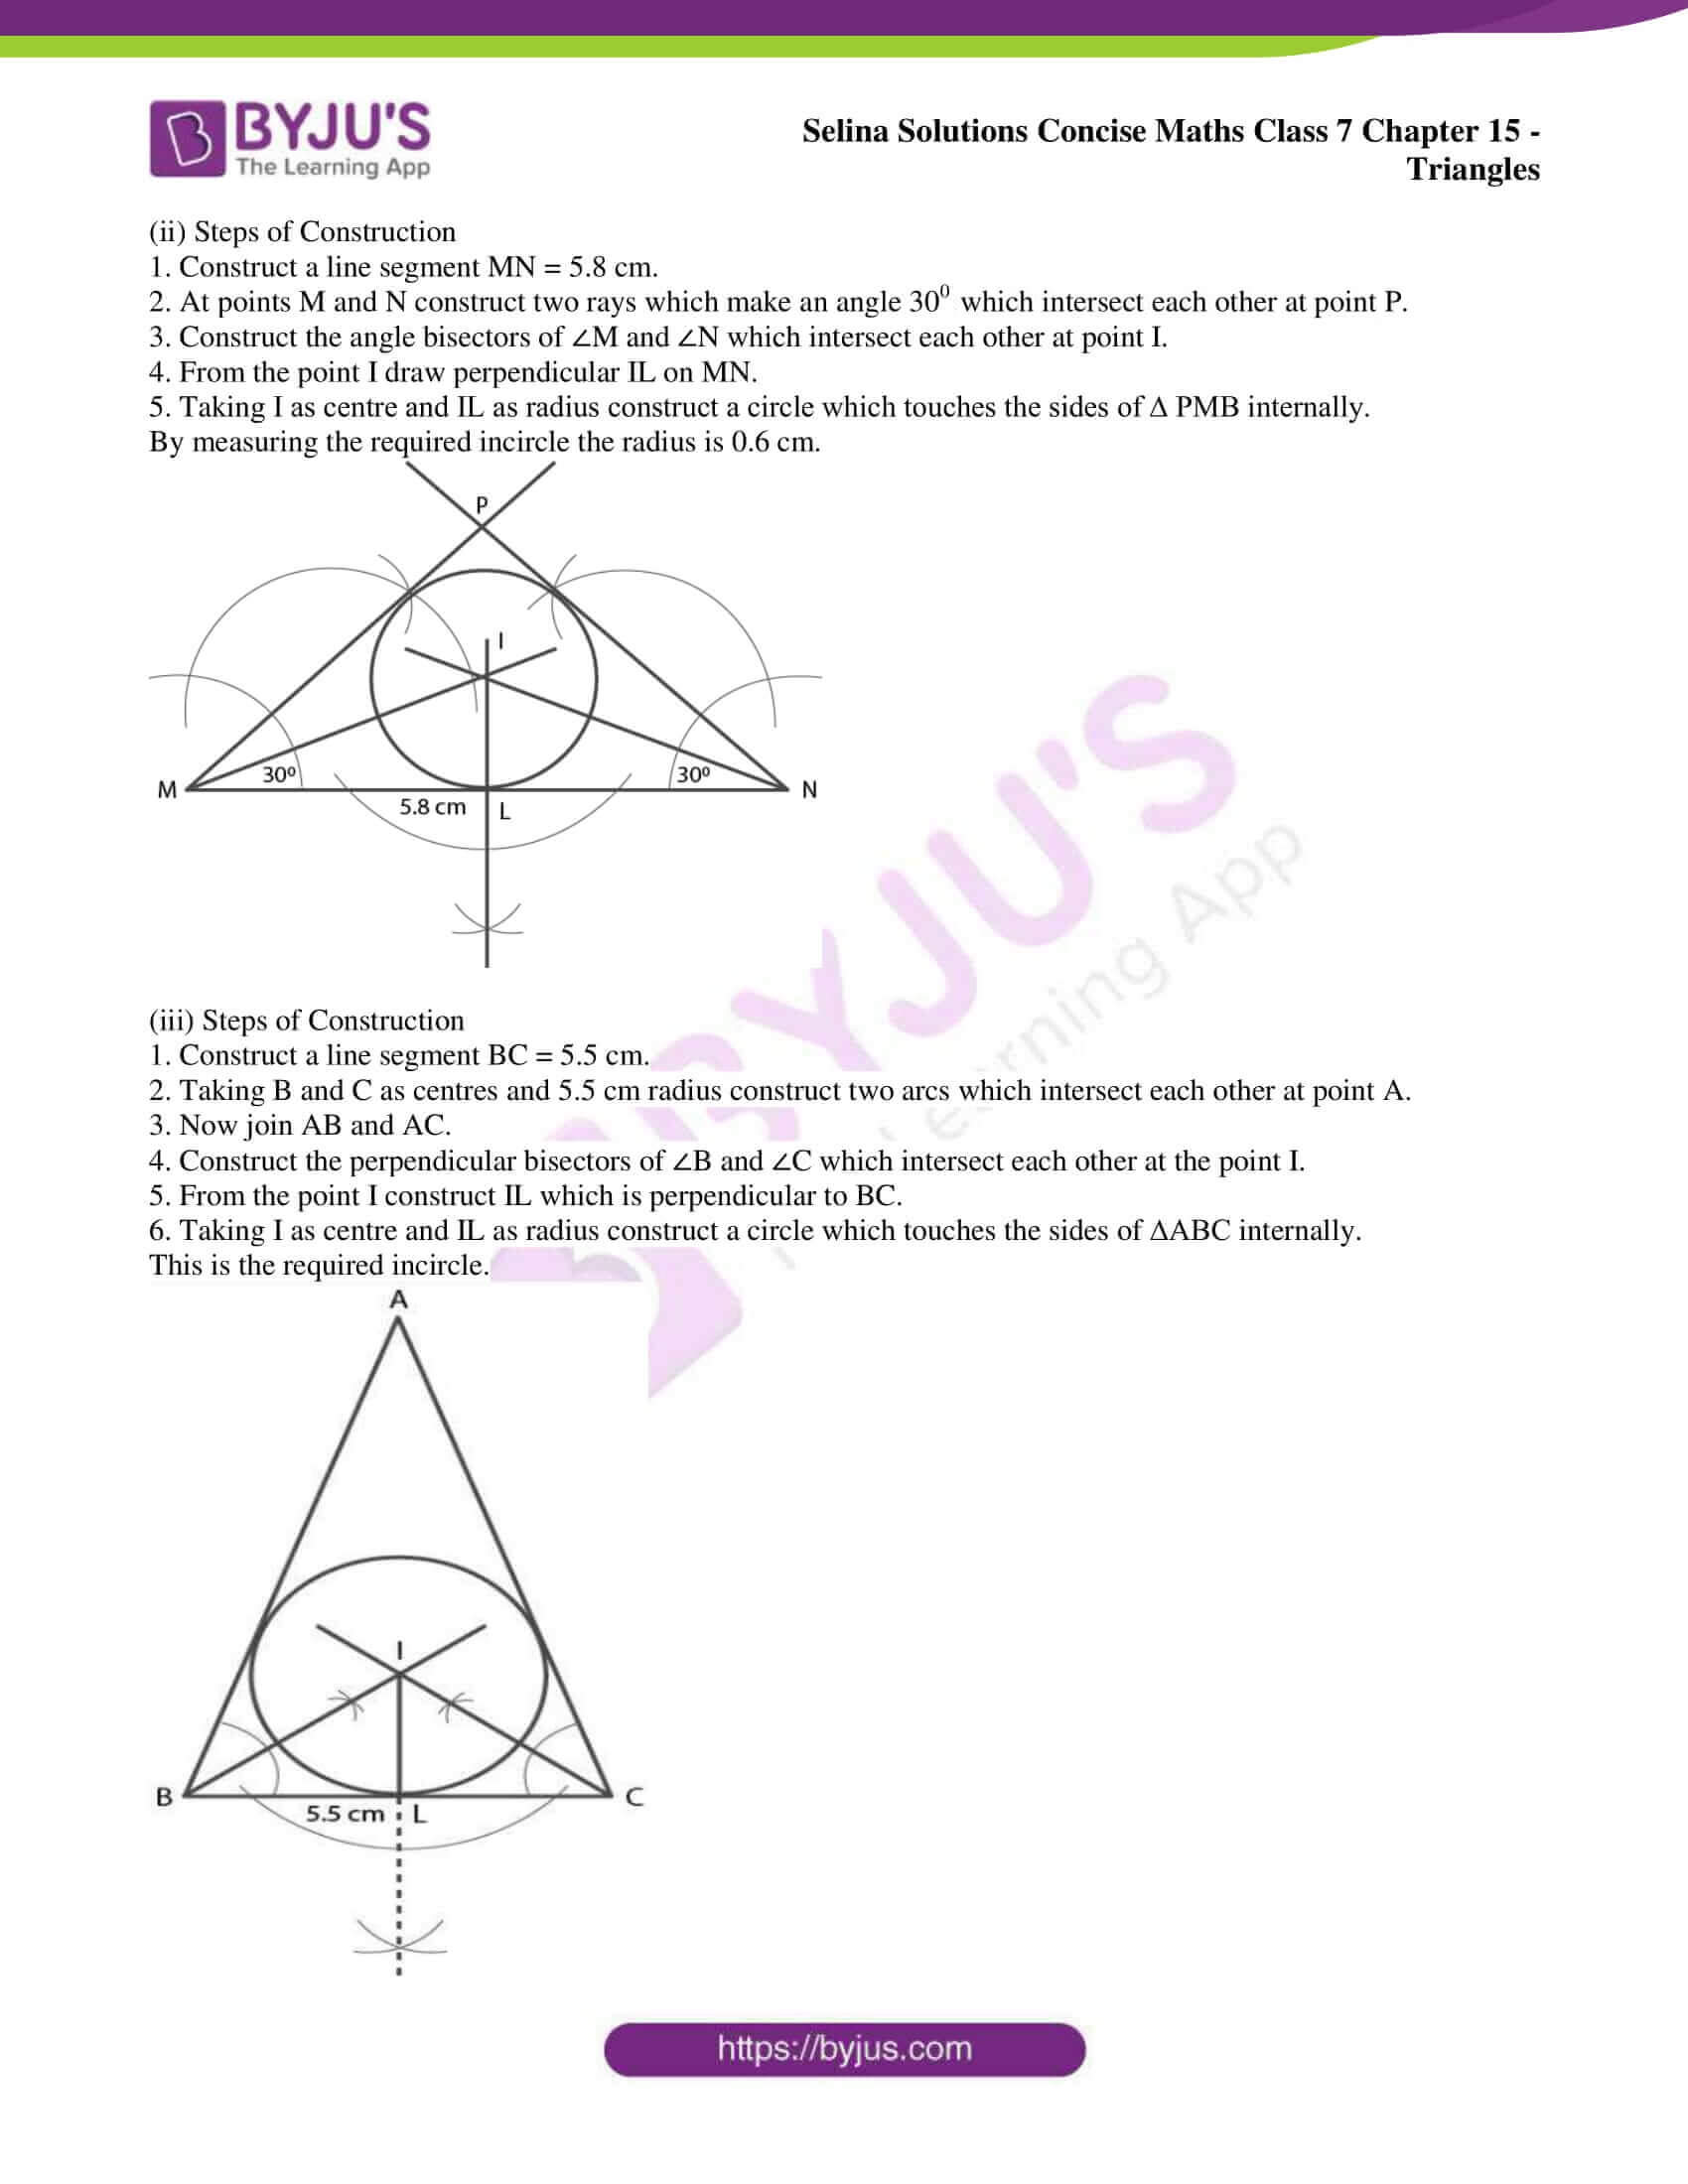 selina sol concise maths class 7 chapter 15 ex c 11